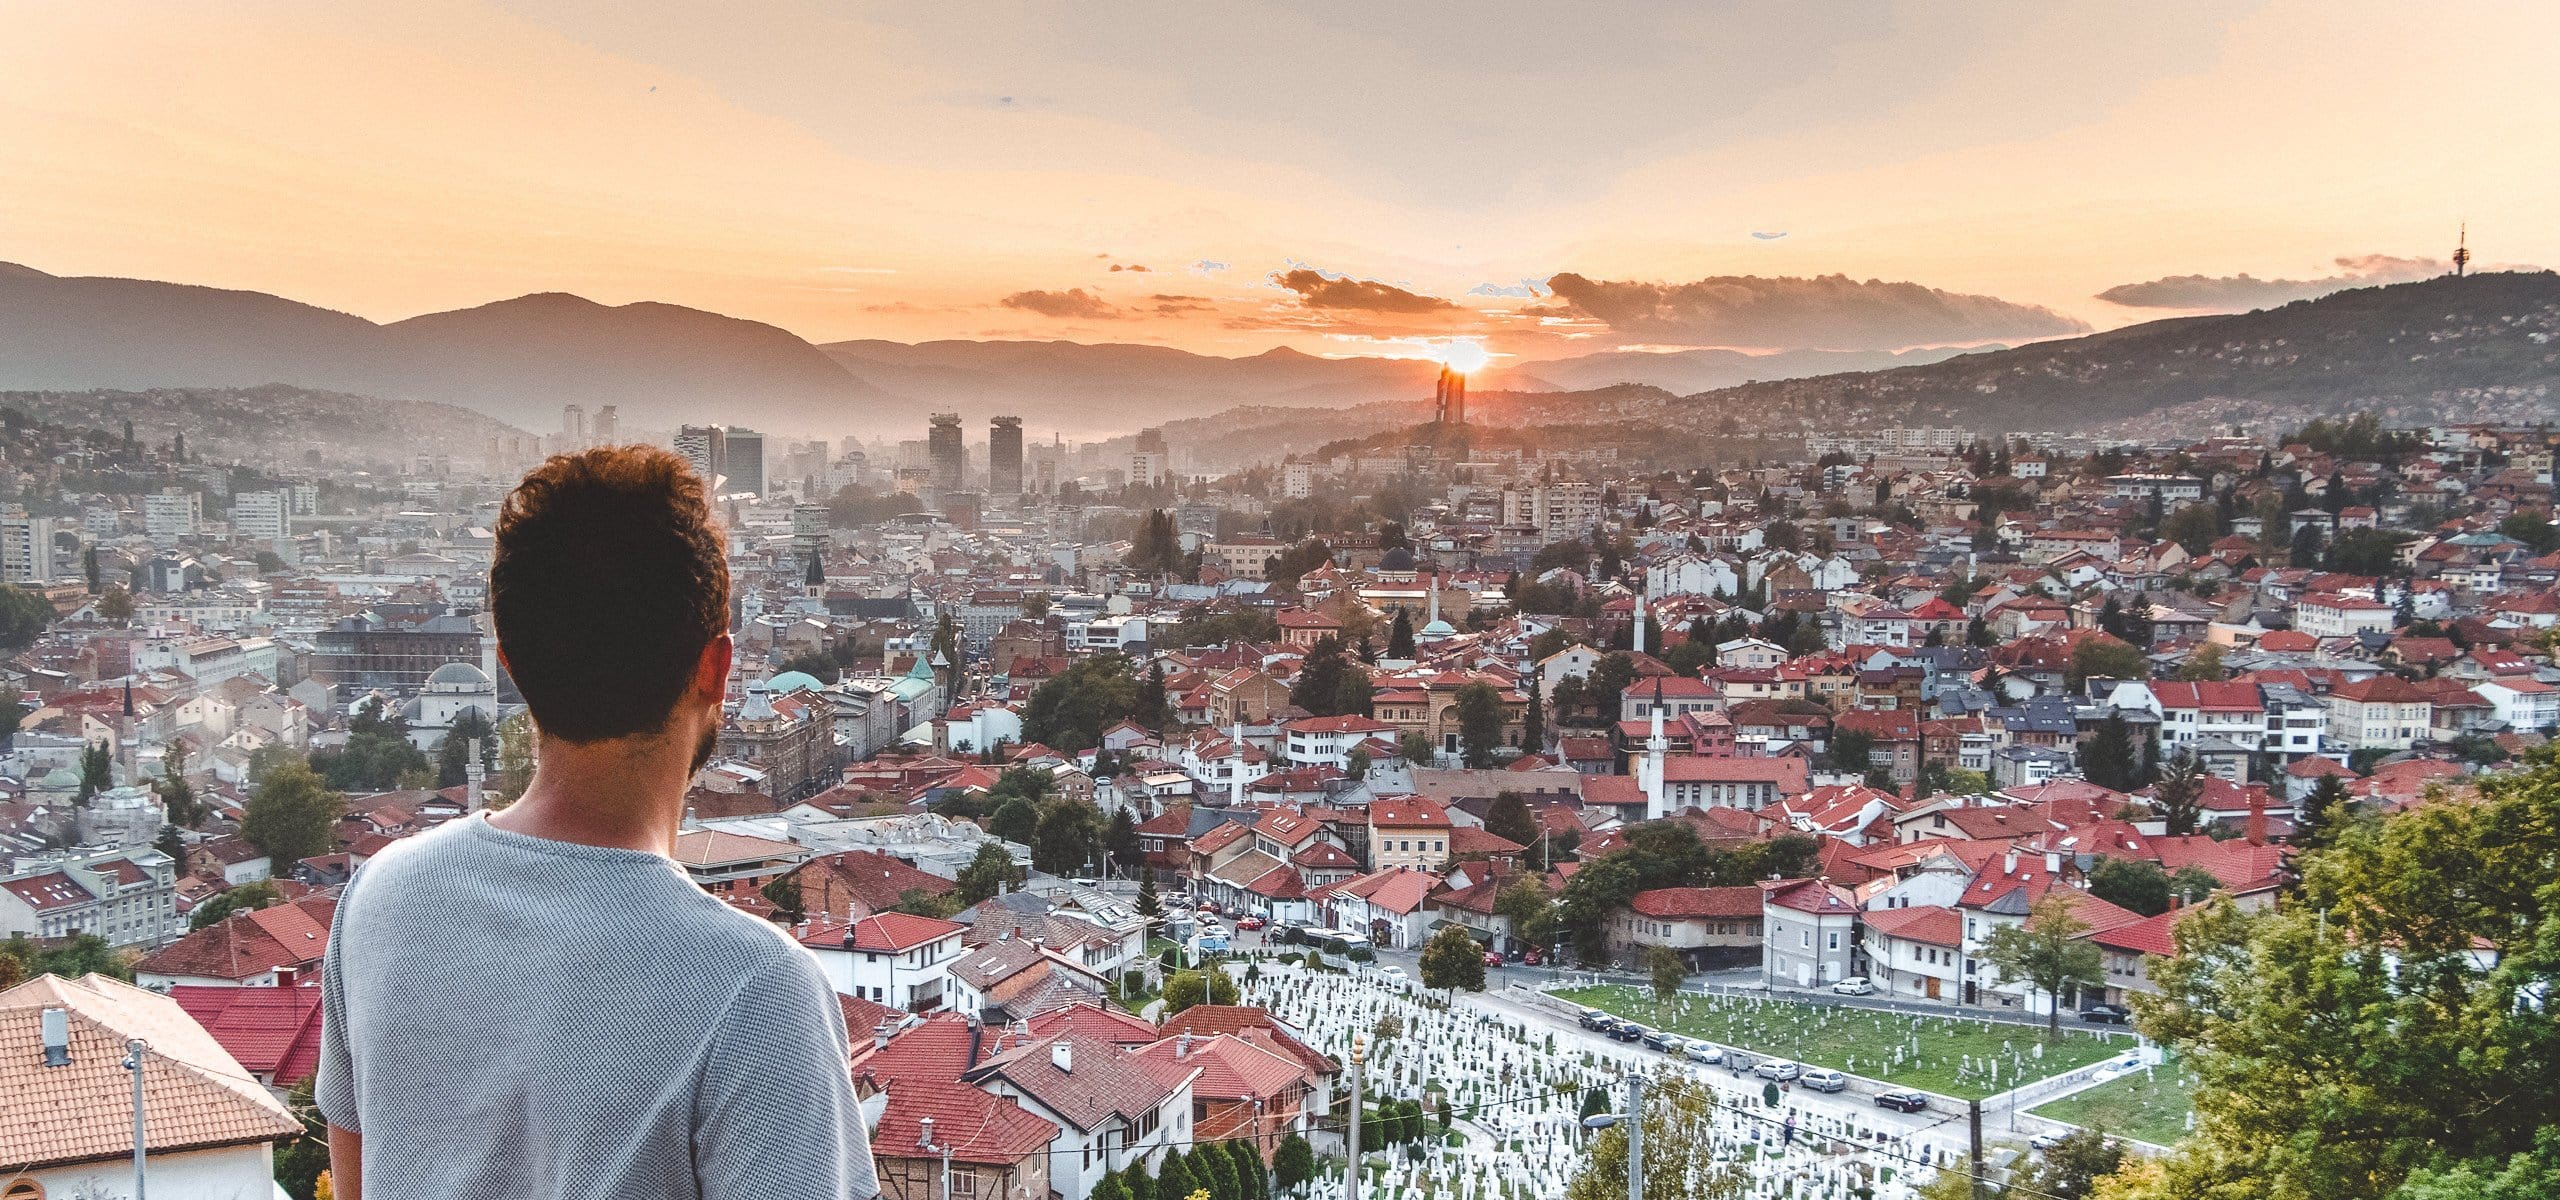 Watching the sunset over Sarajevo from the Yellow Bastion - A Guide To Sarajevo